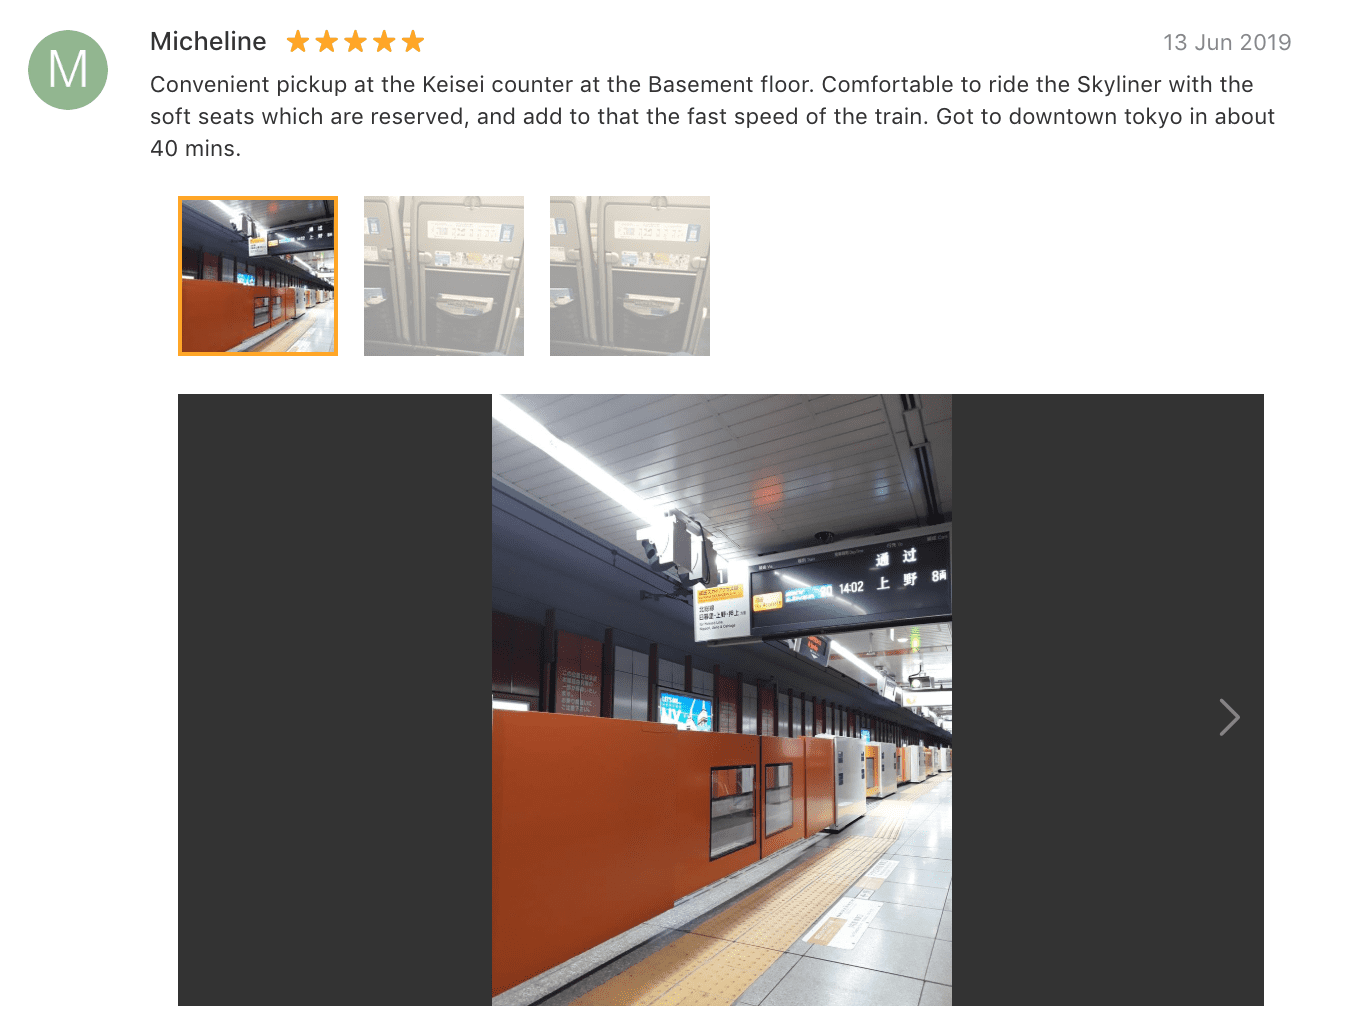 'Convenient pick-up at the Keisei counter at the Basement floor. Comfortable to ride the Skyliner with the soft seats which are reserved, and add to that the fast speed of the train. Got to downtown tokyo in about 40 mins.' - Suica card Tokyo, Japan: Klook Review